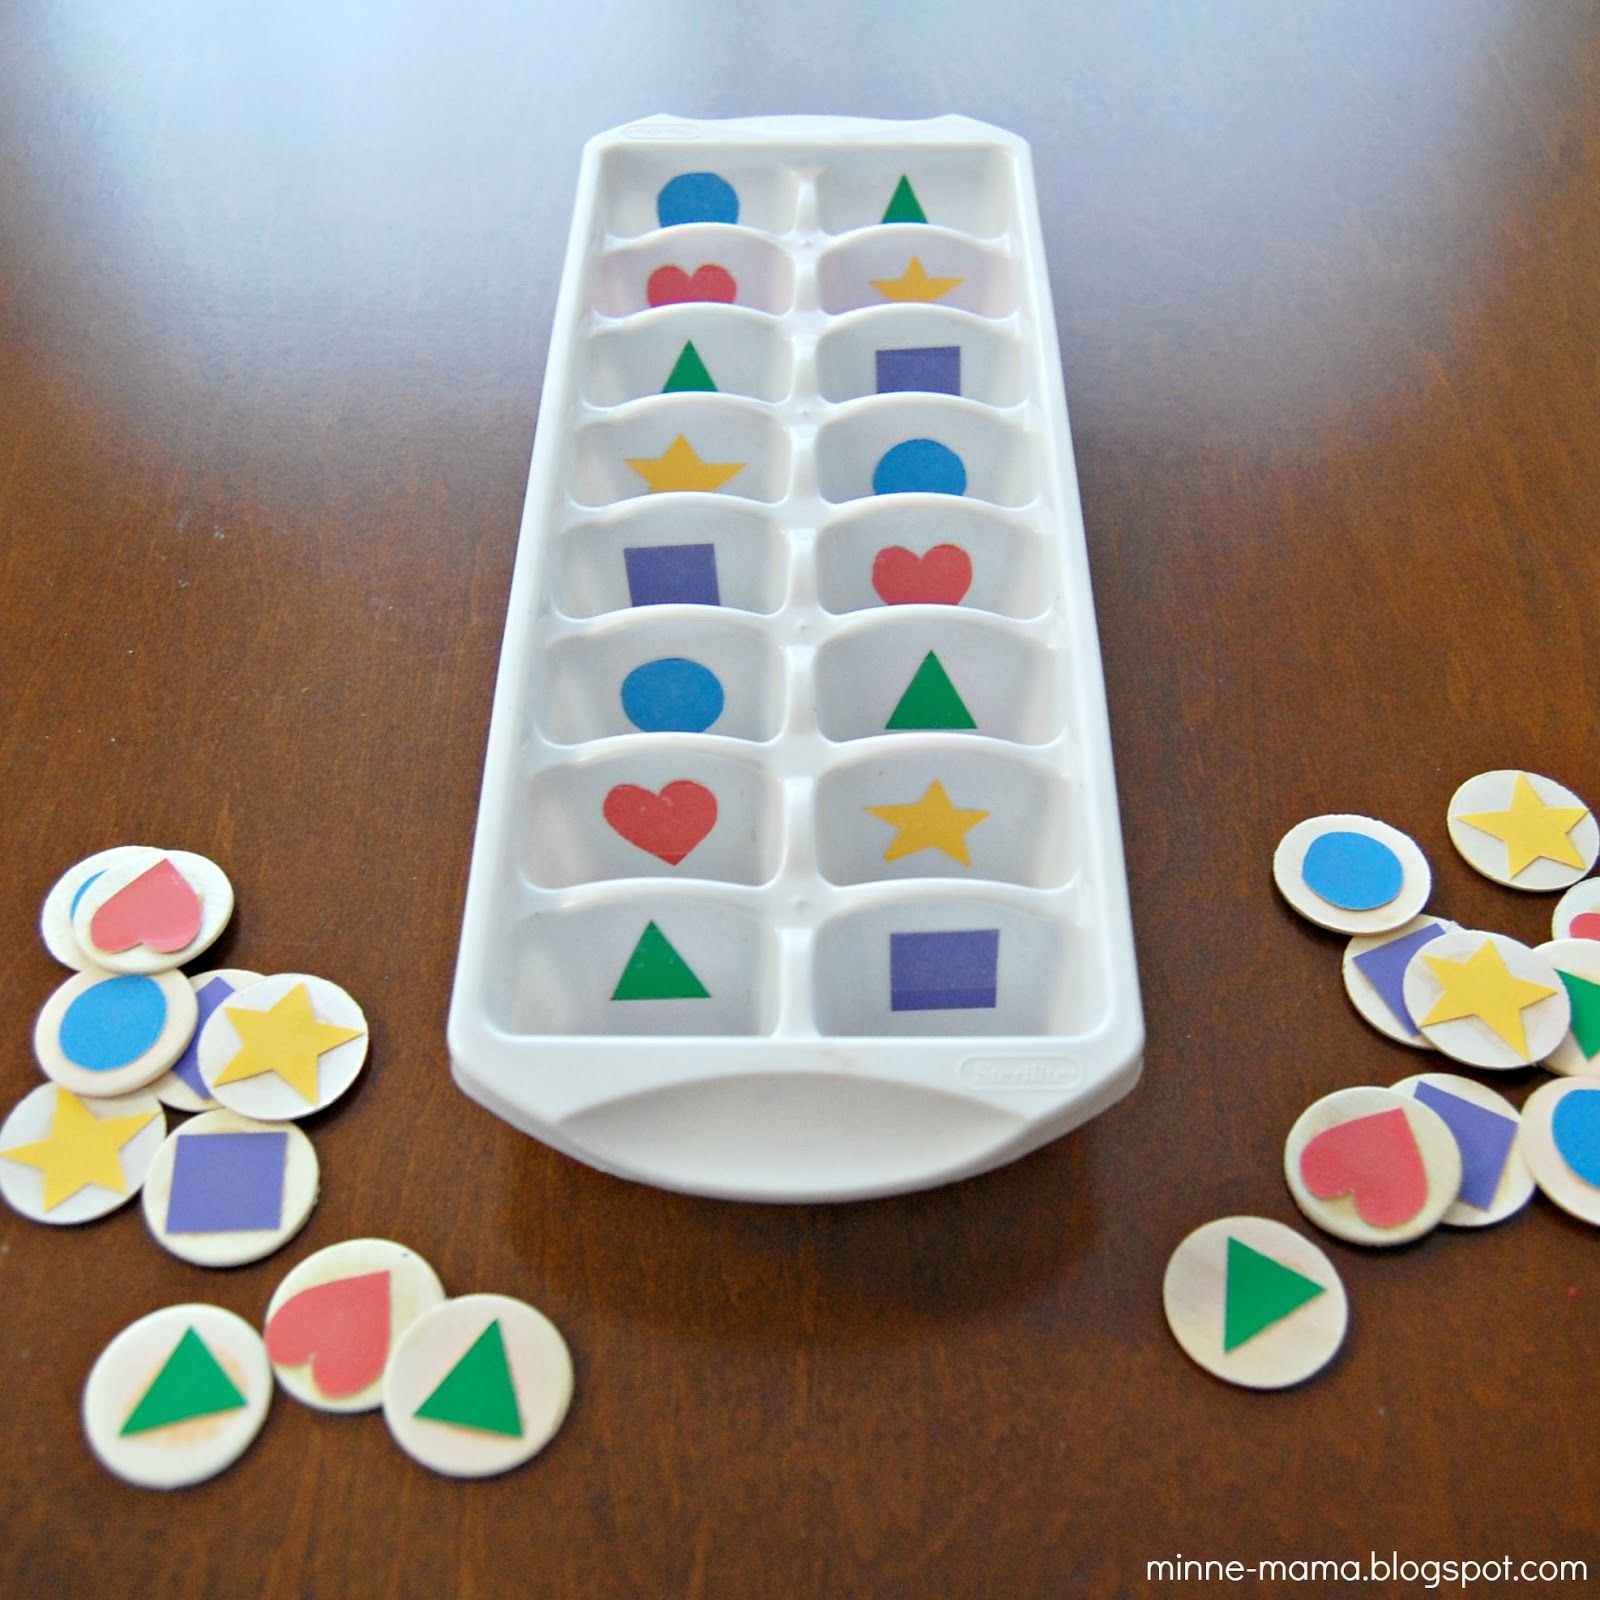 Activities for colors for toddlers - Shape Sorting Activities For Toddlers From Minne Mama